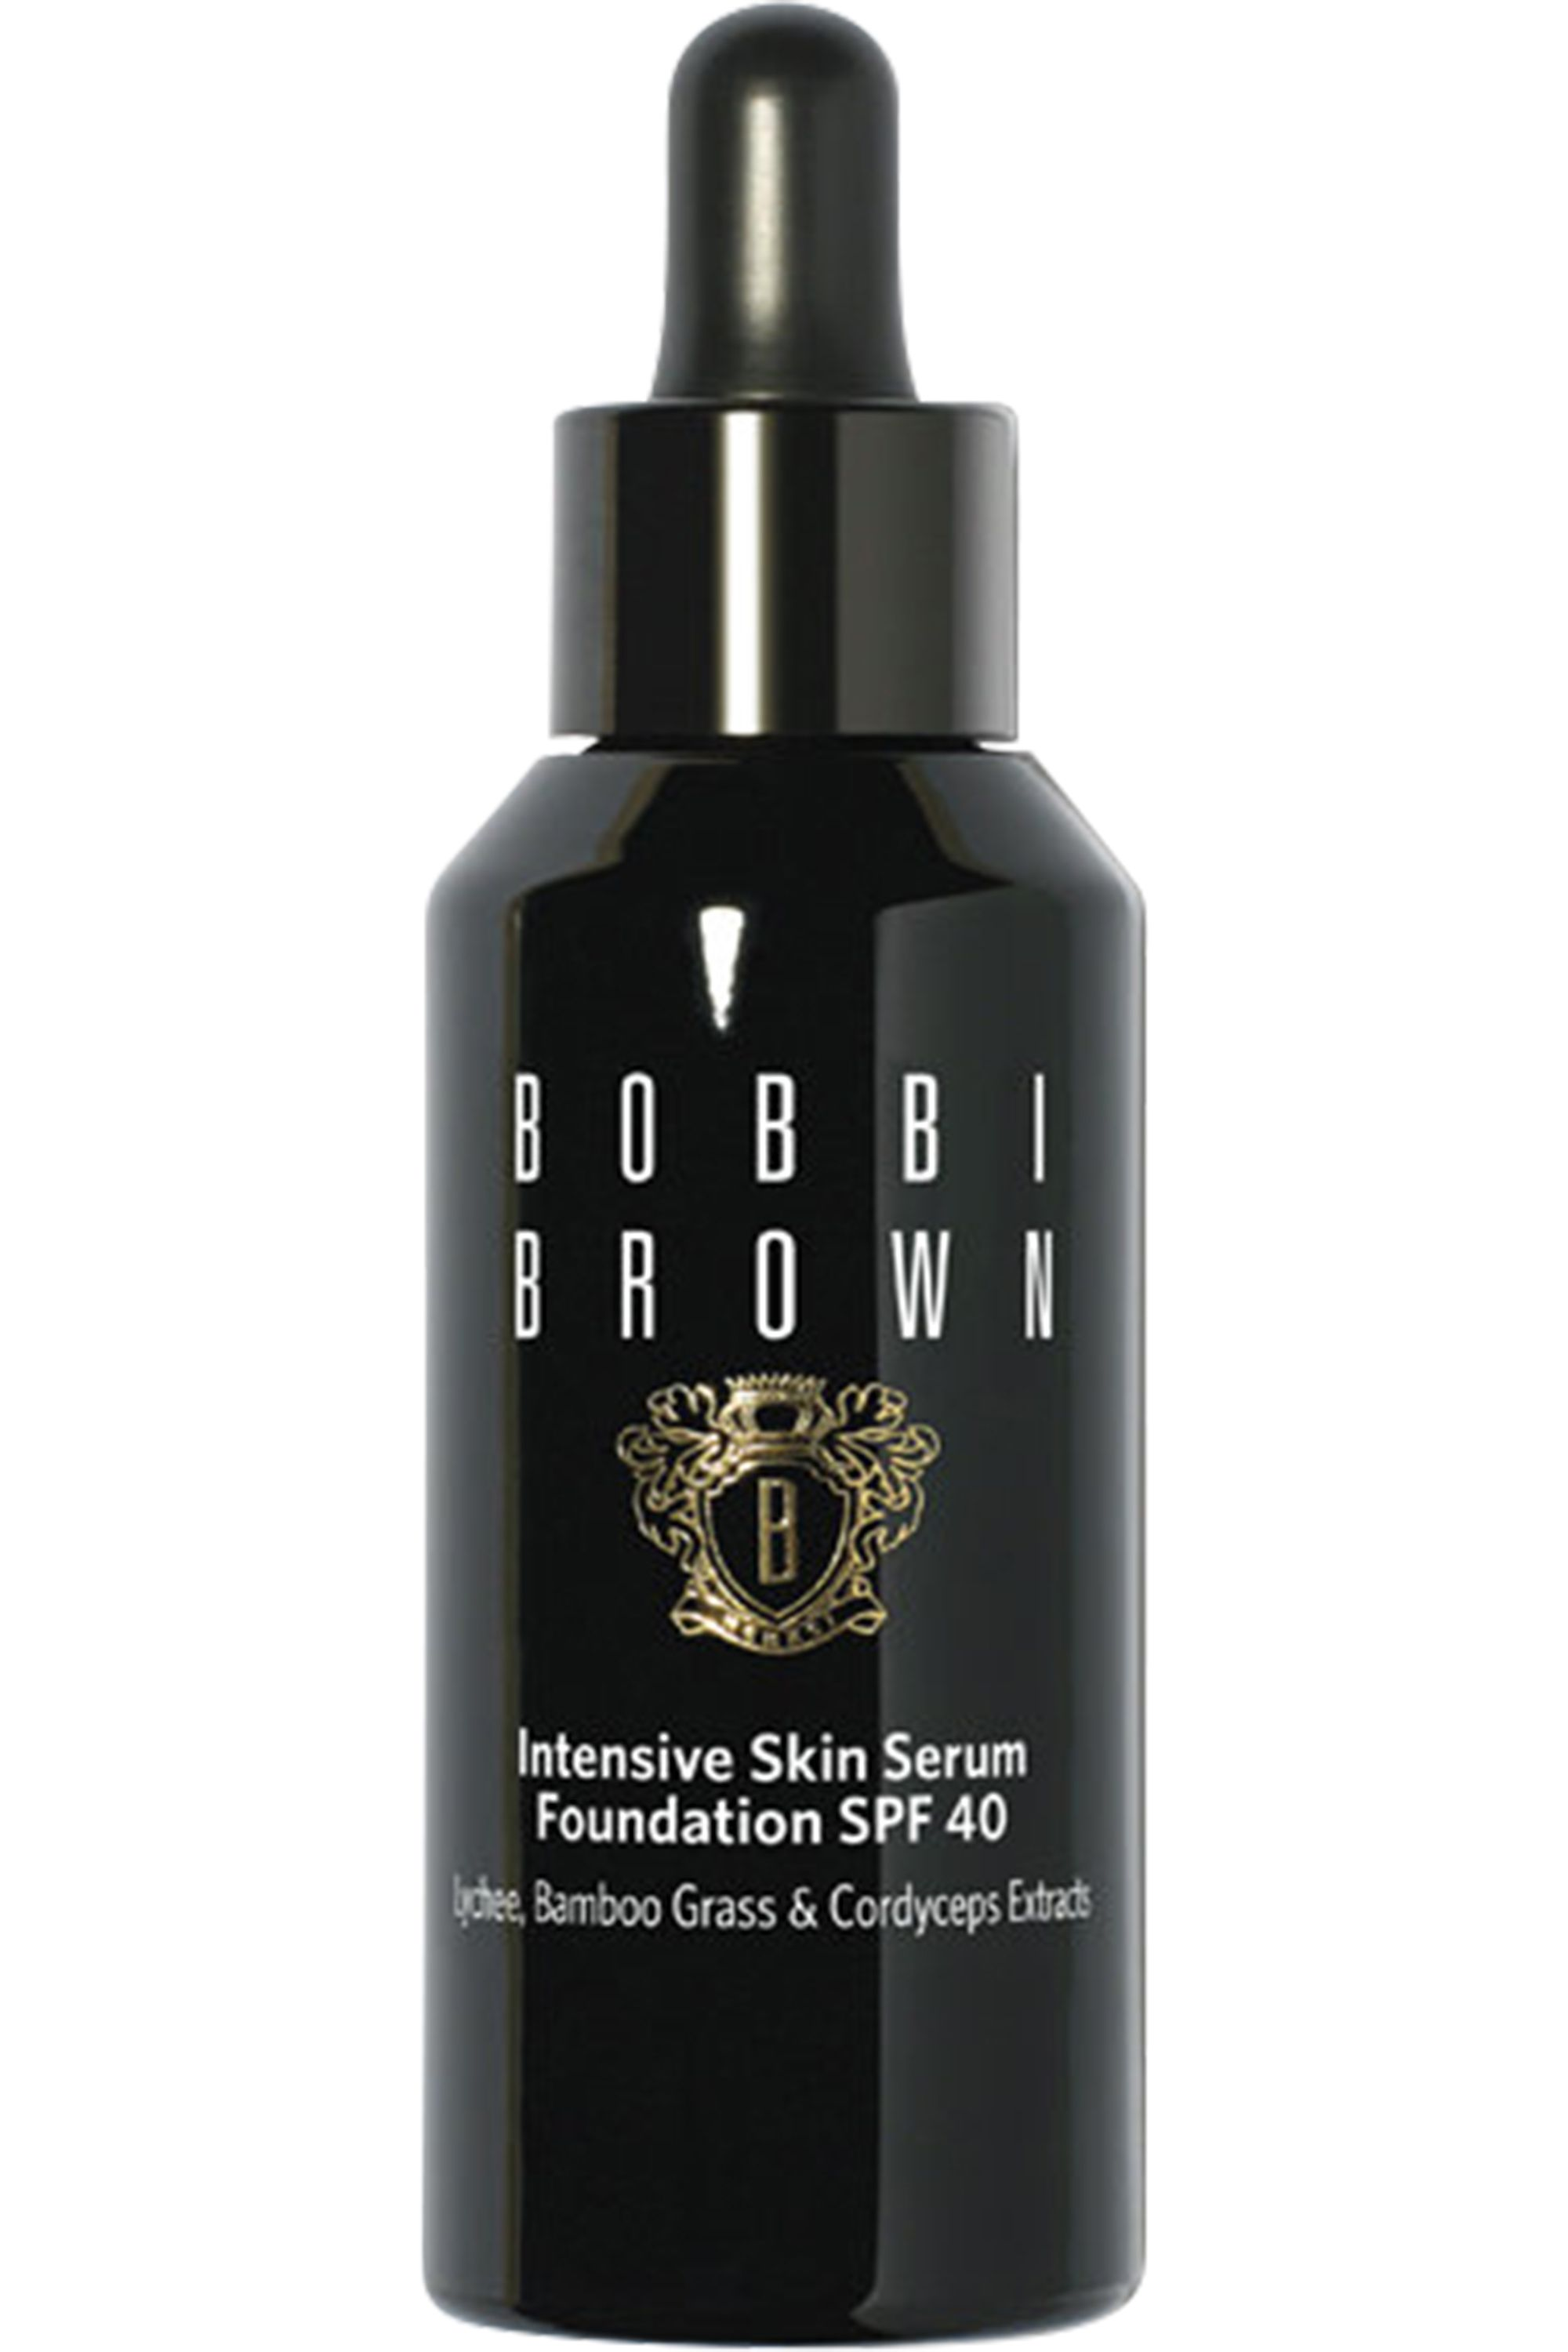 Blissim : Bobbi Brown - Fond de teint Intensive Skin Serum - Fond de teint Intensive Skin Serum